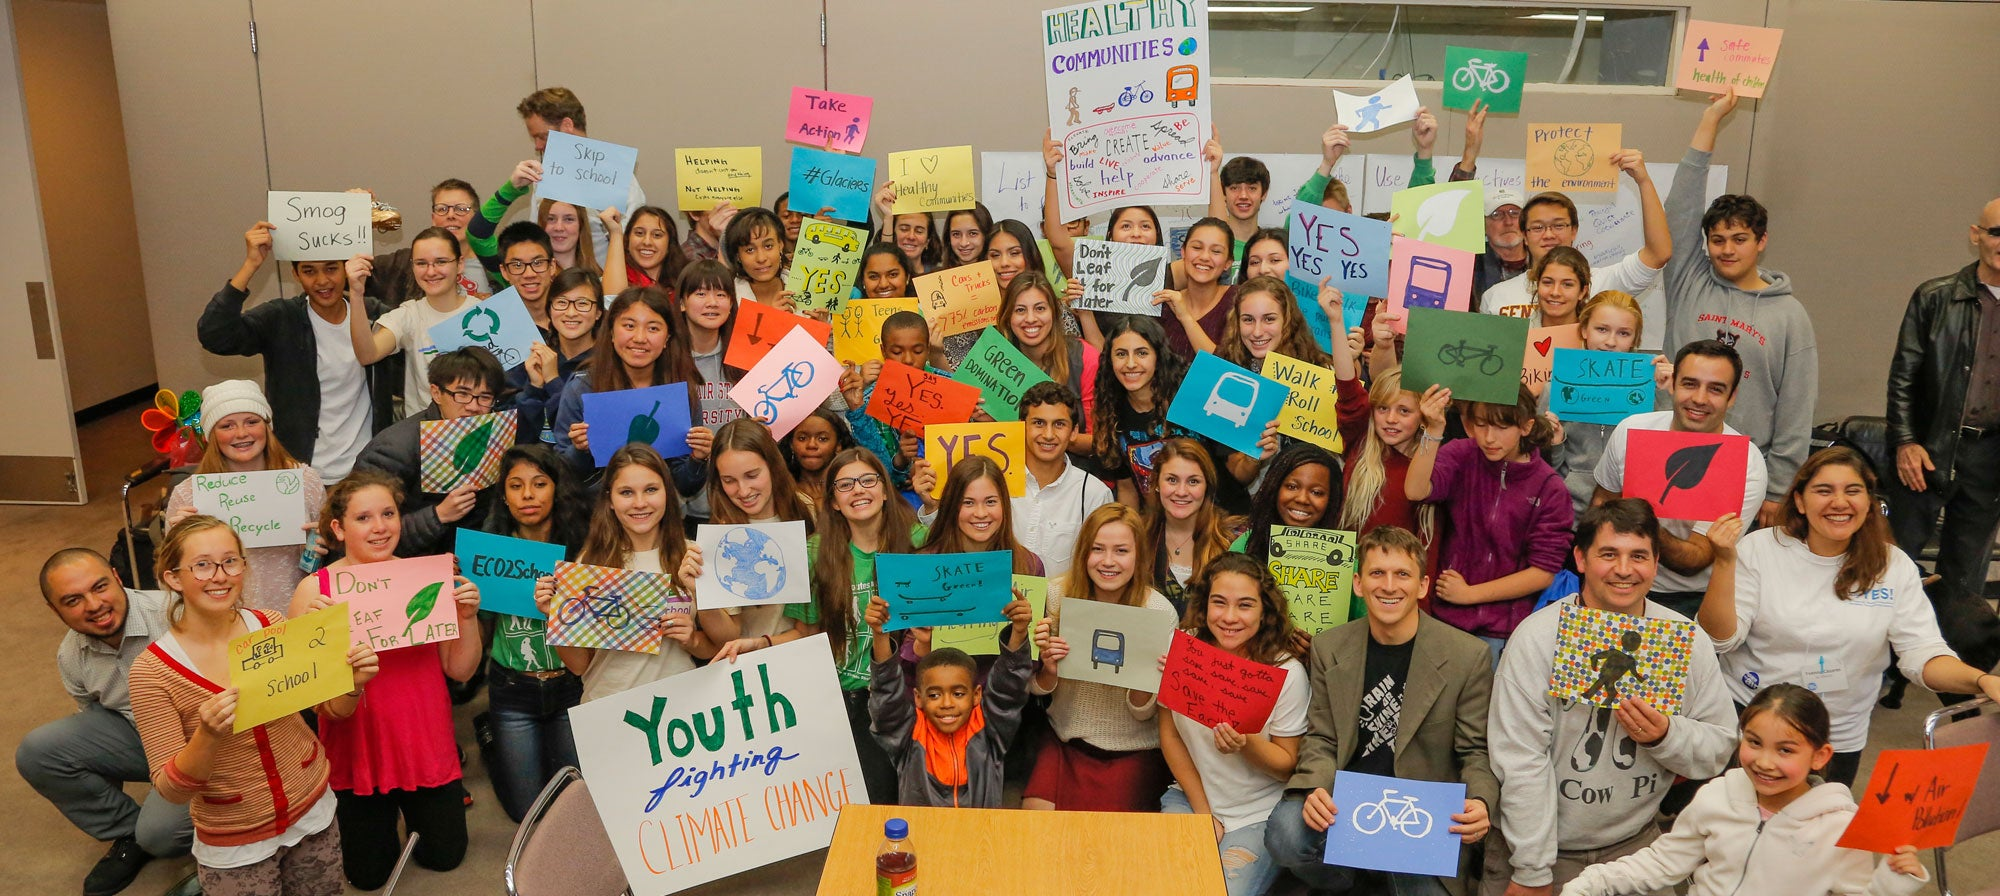 Students gather with signs for a group photo at the 2014 YES Conference